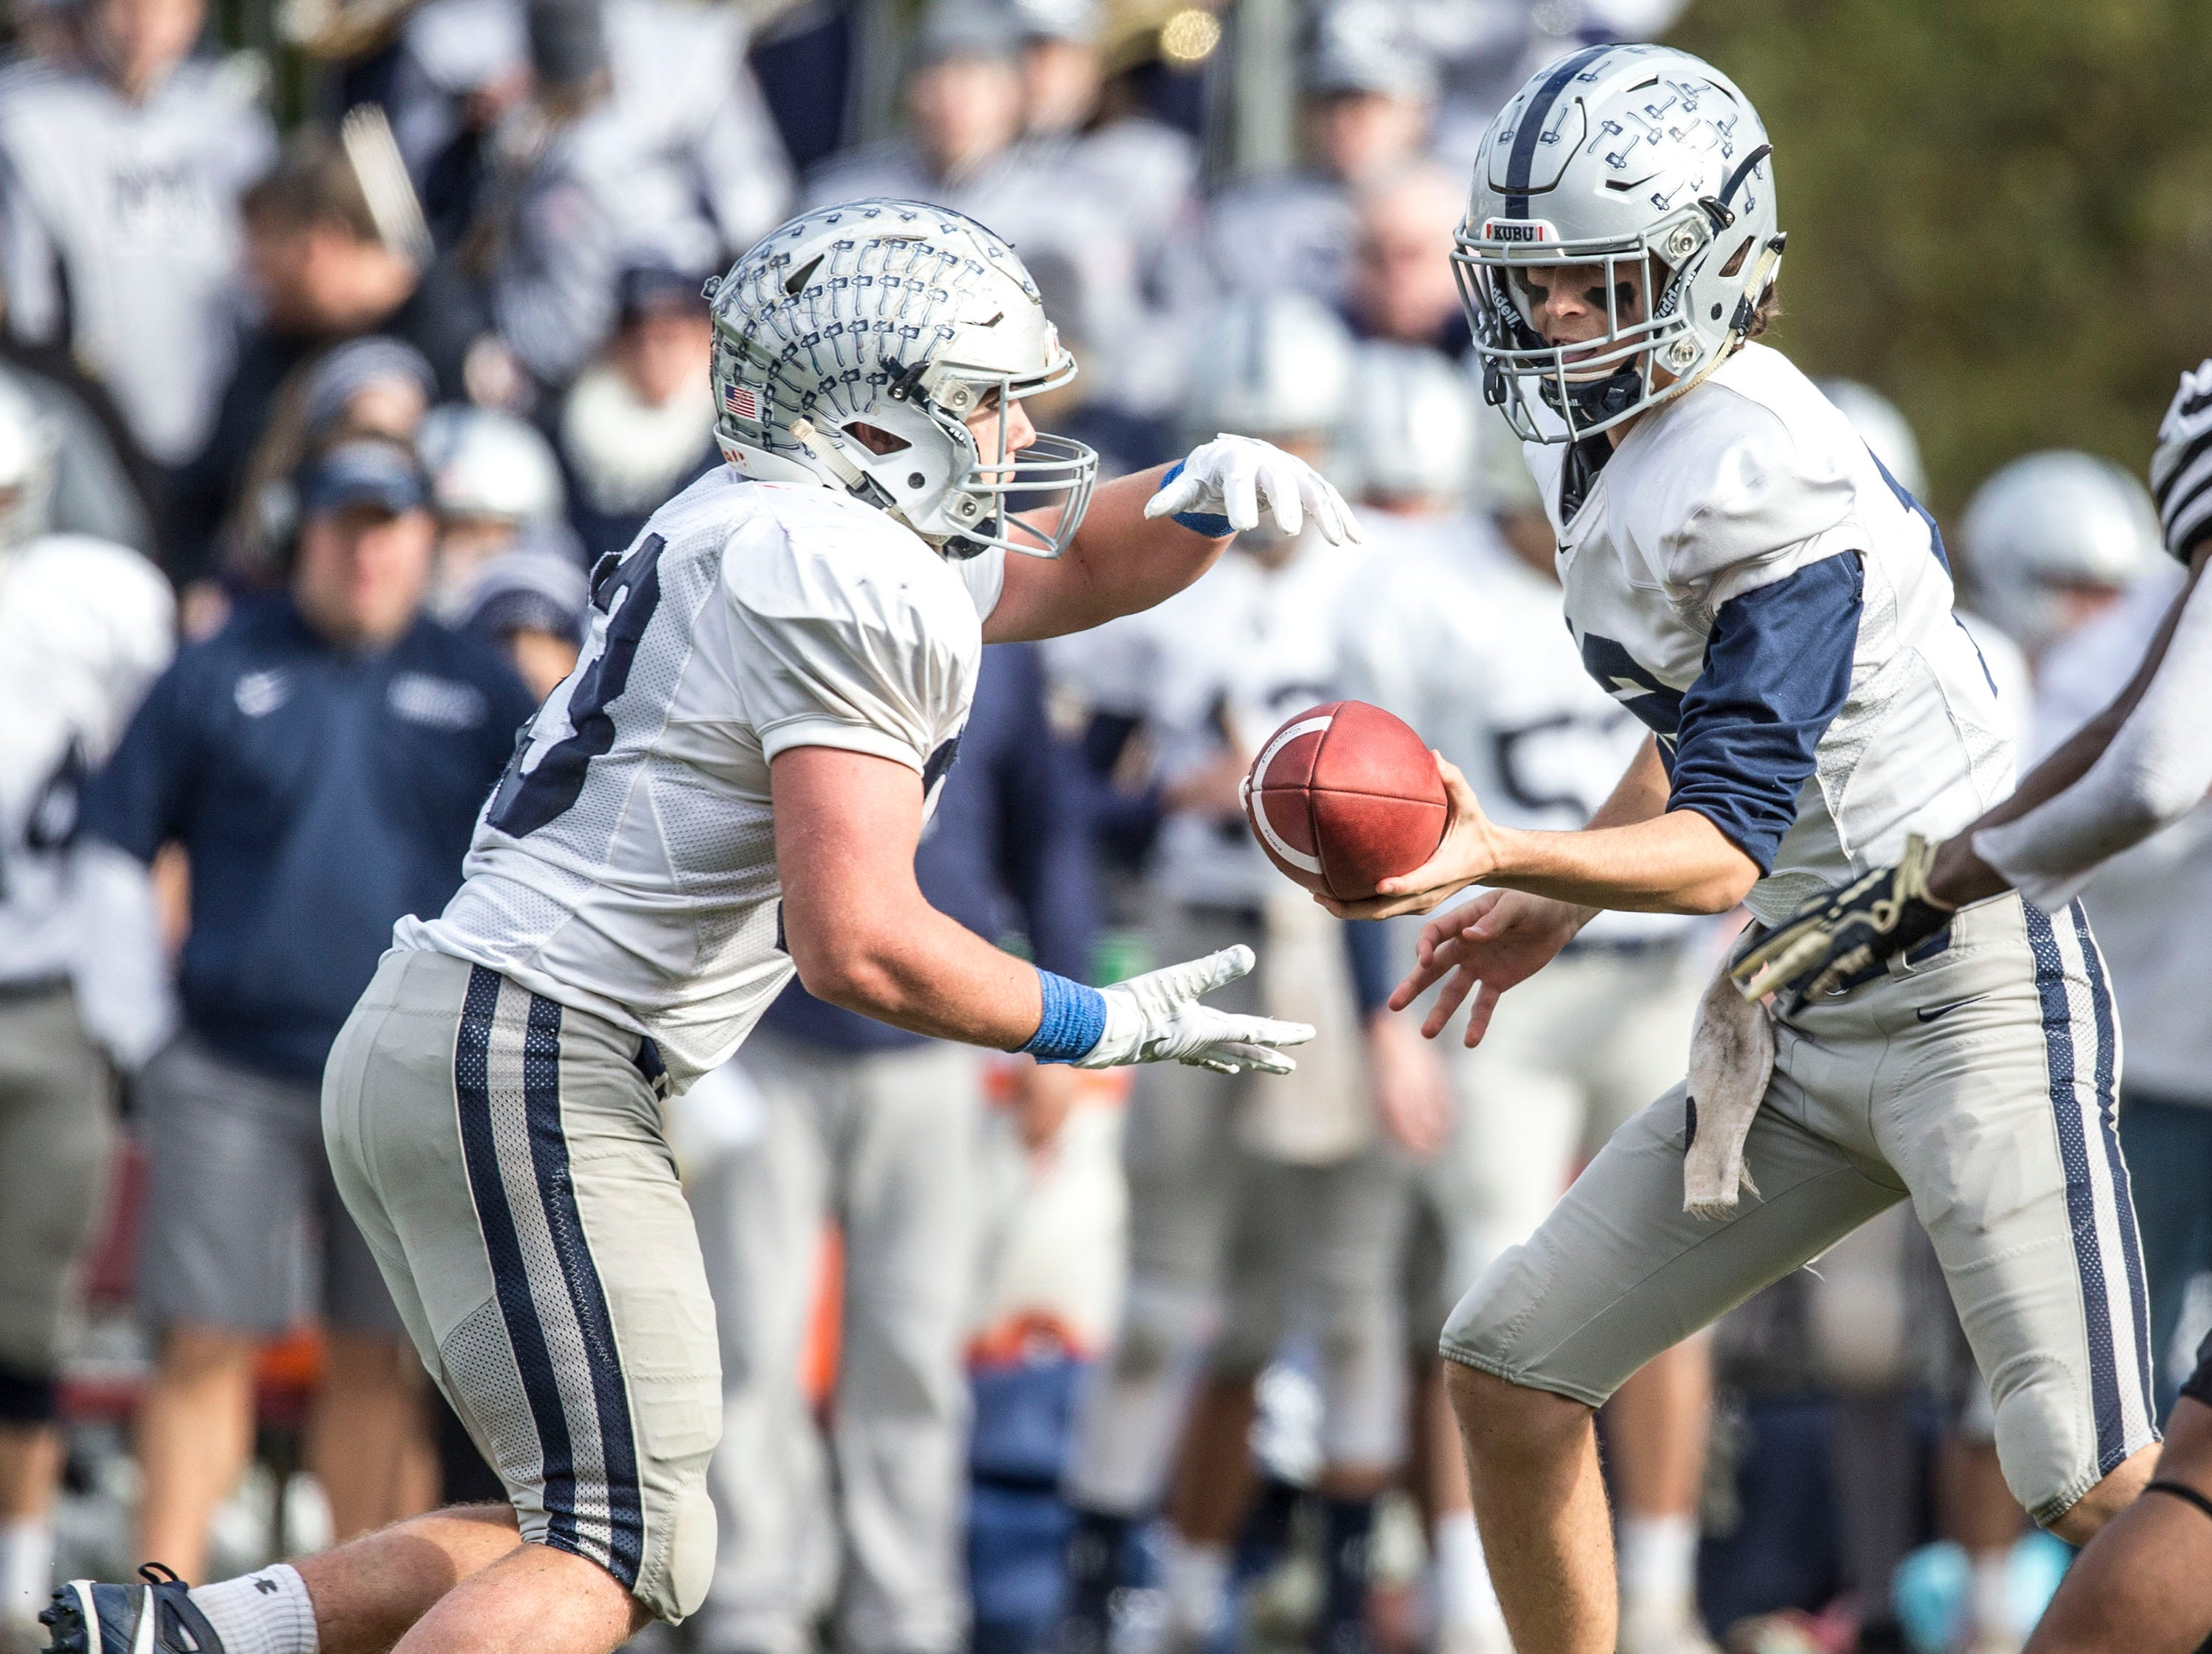 Manasquan's #33 Canyon Birch gains yards on the ground. Manasquan falls to Hillside in the NJSIAA Central Group II championship football game. Hillside, NJSaturday, November, 17, 2018